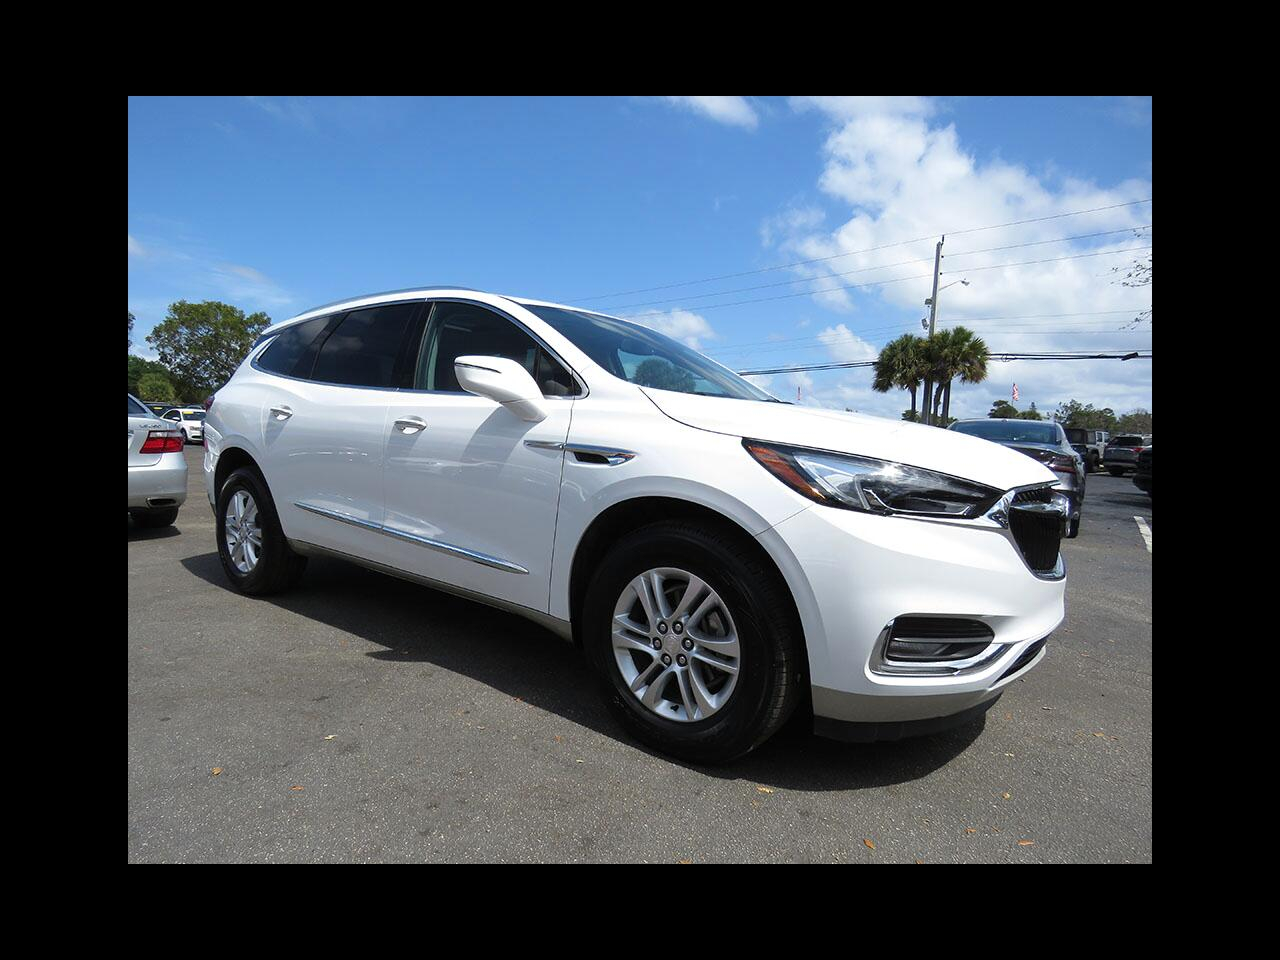 Used 2020 Buick Enclave Essence For Sale In Pompano Beach Fl New 2022 Buick Enclave Price, Pictures, Brochure